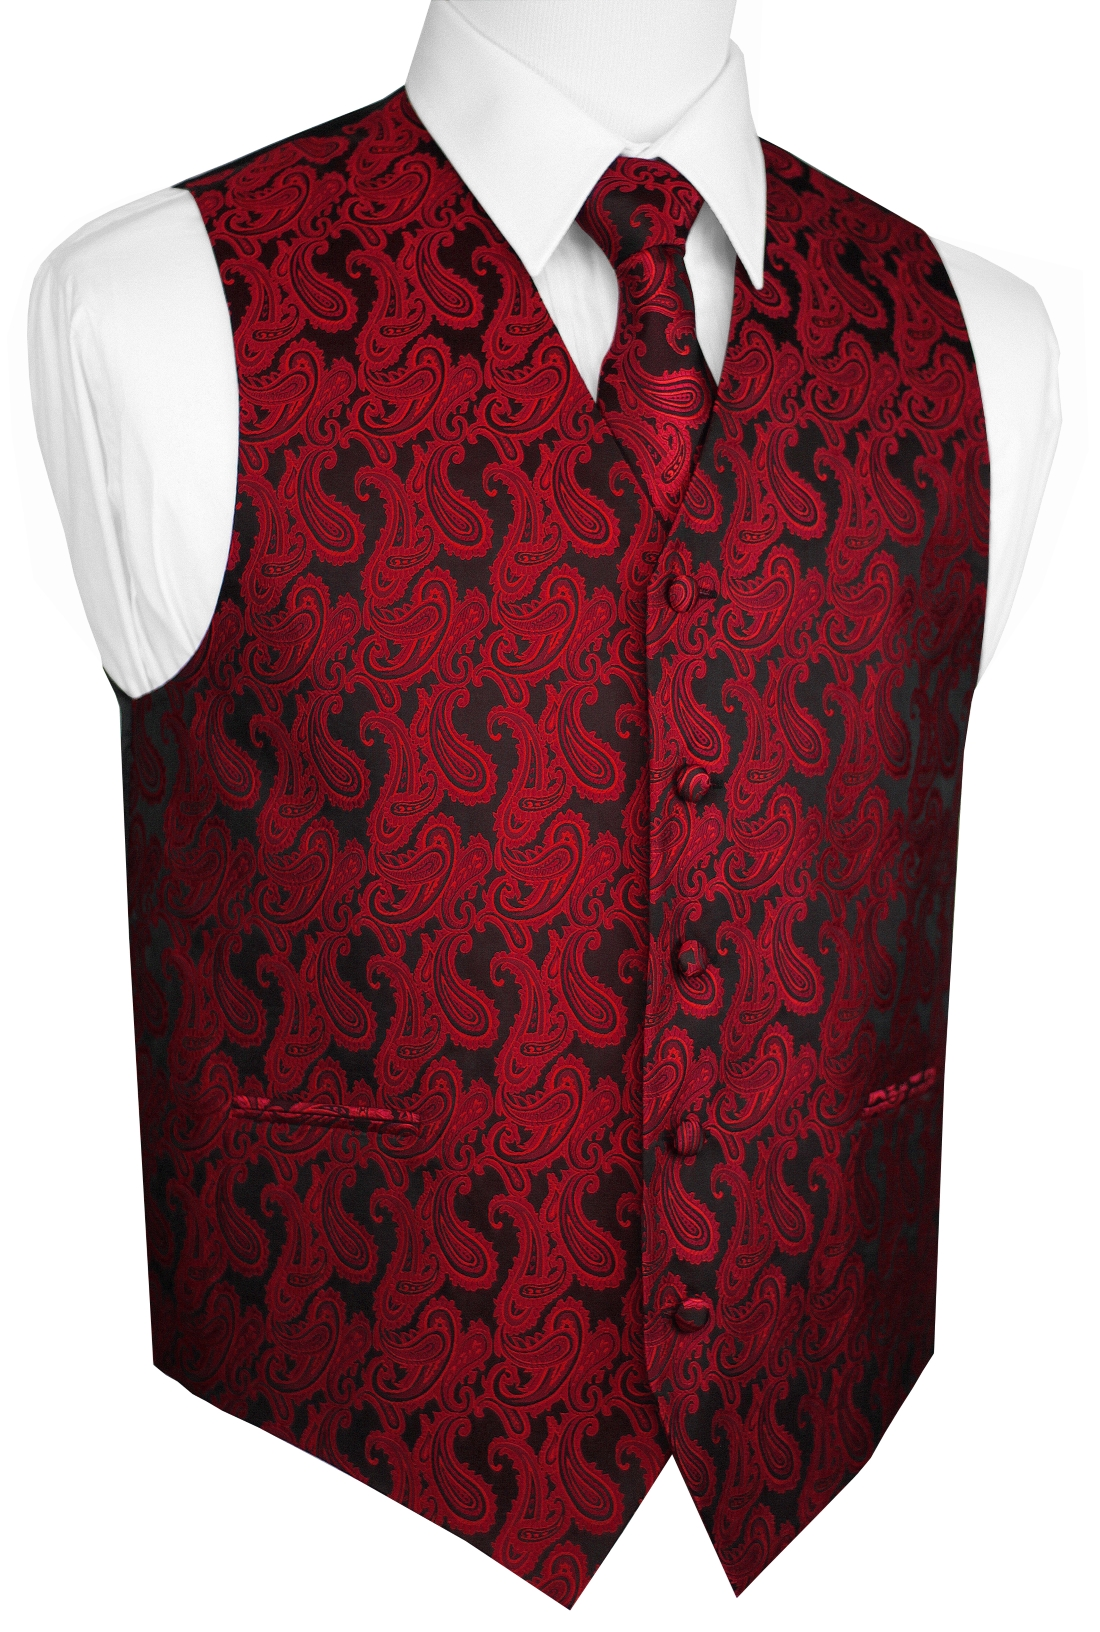 Italian Design, Men's Tuxedo Vest, Tie & Hankie Set - Apple Paisley